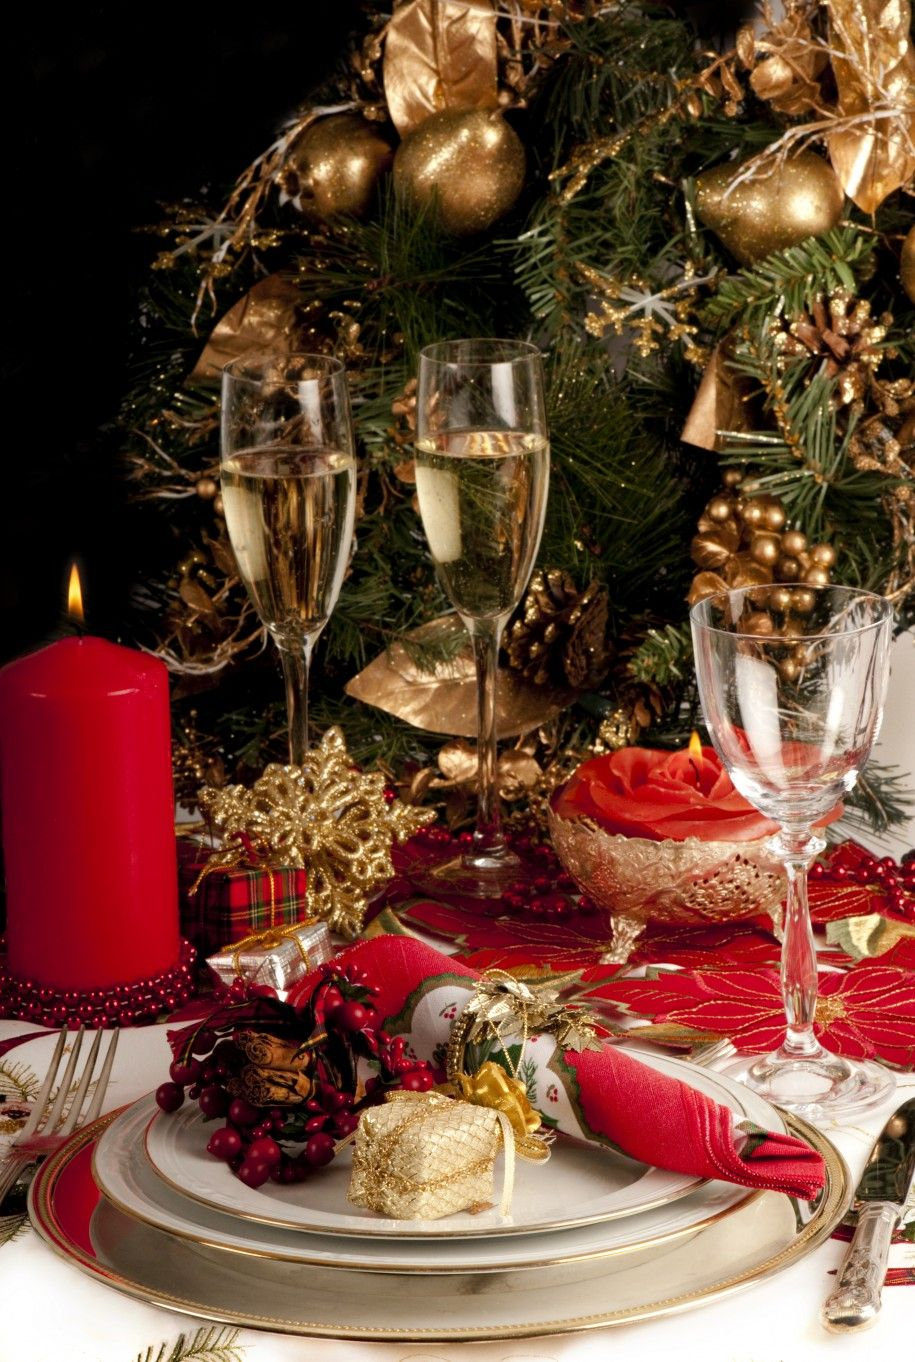 Dining Room Wonderful Christmas Dinning Table Decoration Ideas With Crystal Wine Gla Gold Christmas Decorations Christmas Table Settings Christmas Dining Table